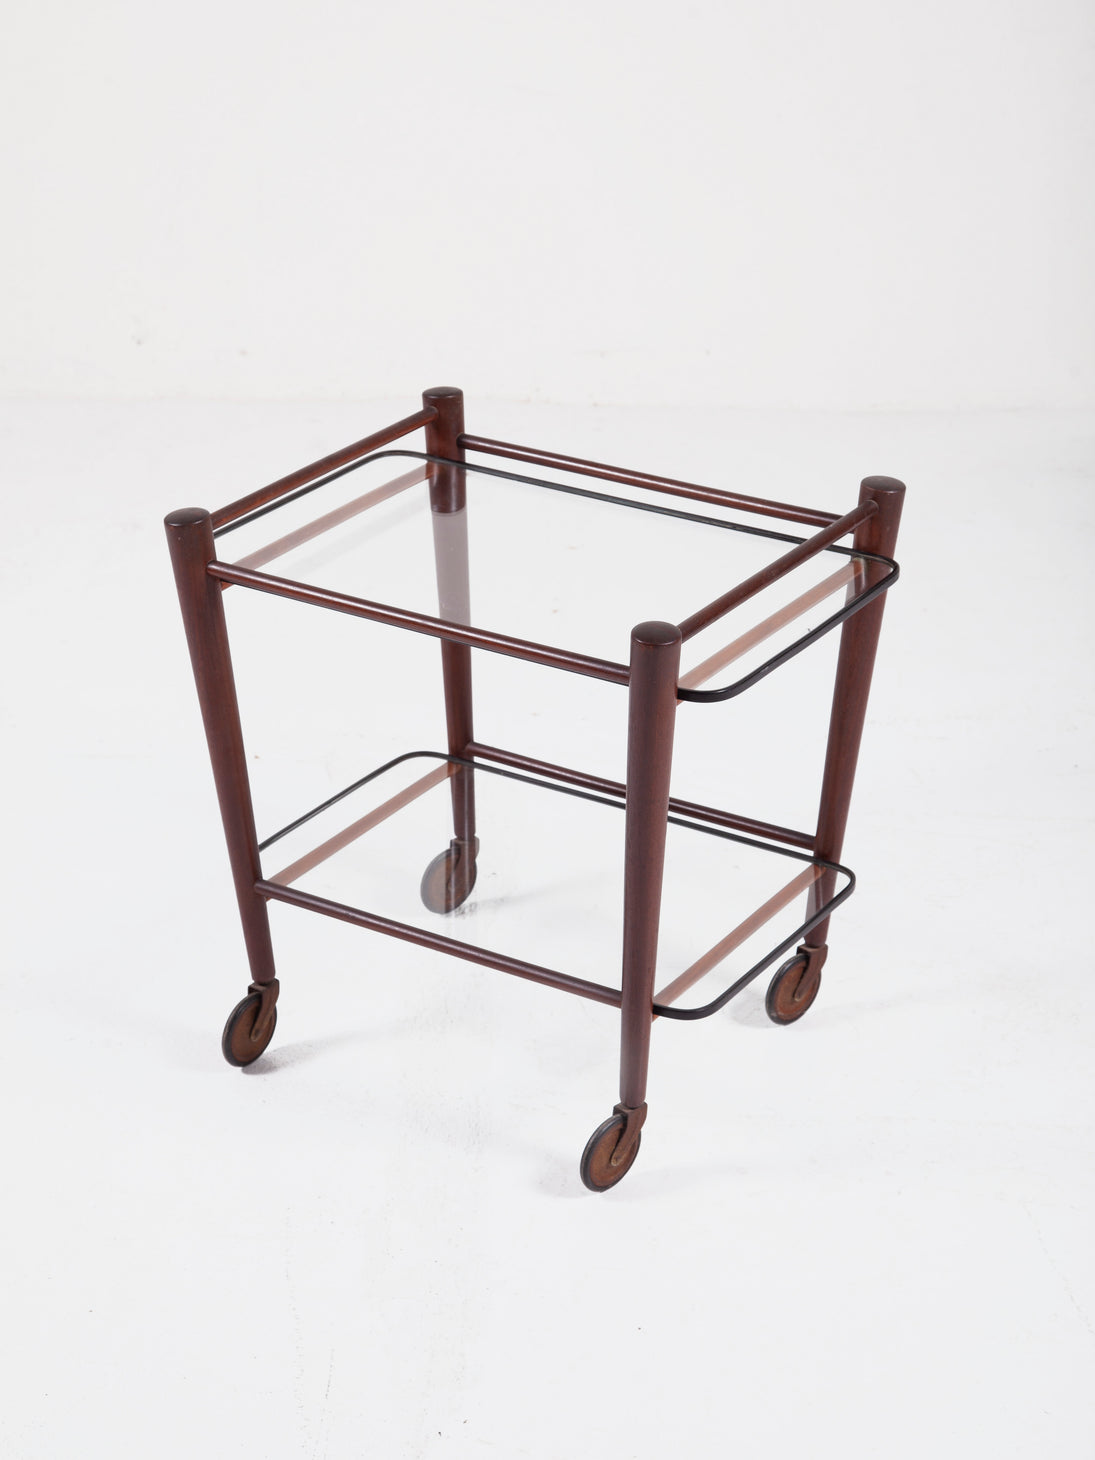 Beverage cart by Cees Braakman for Pastoe